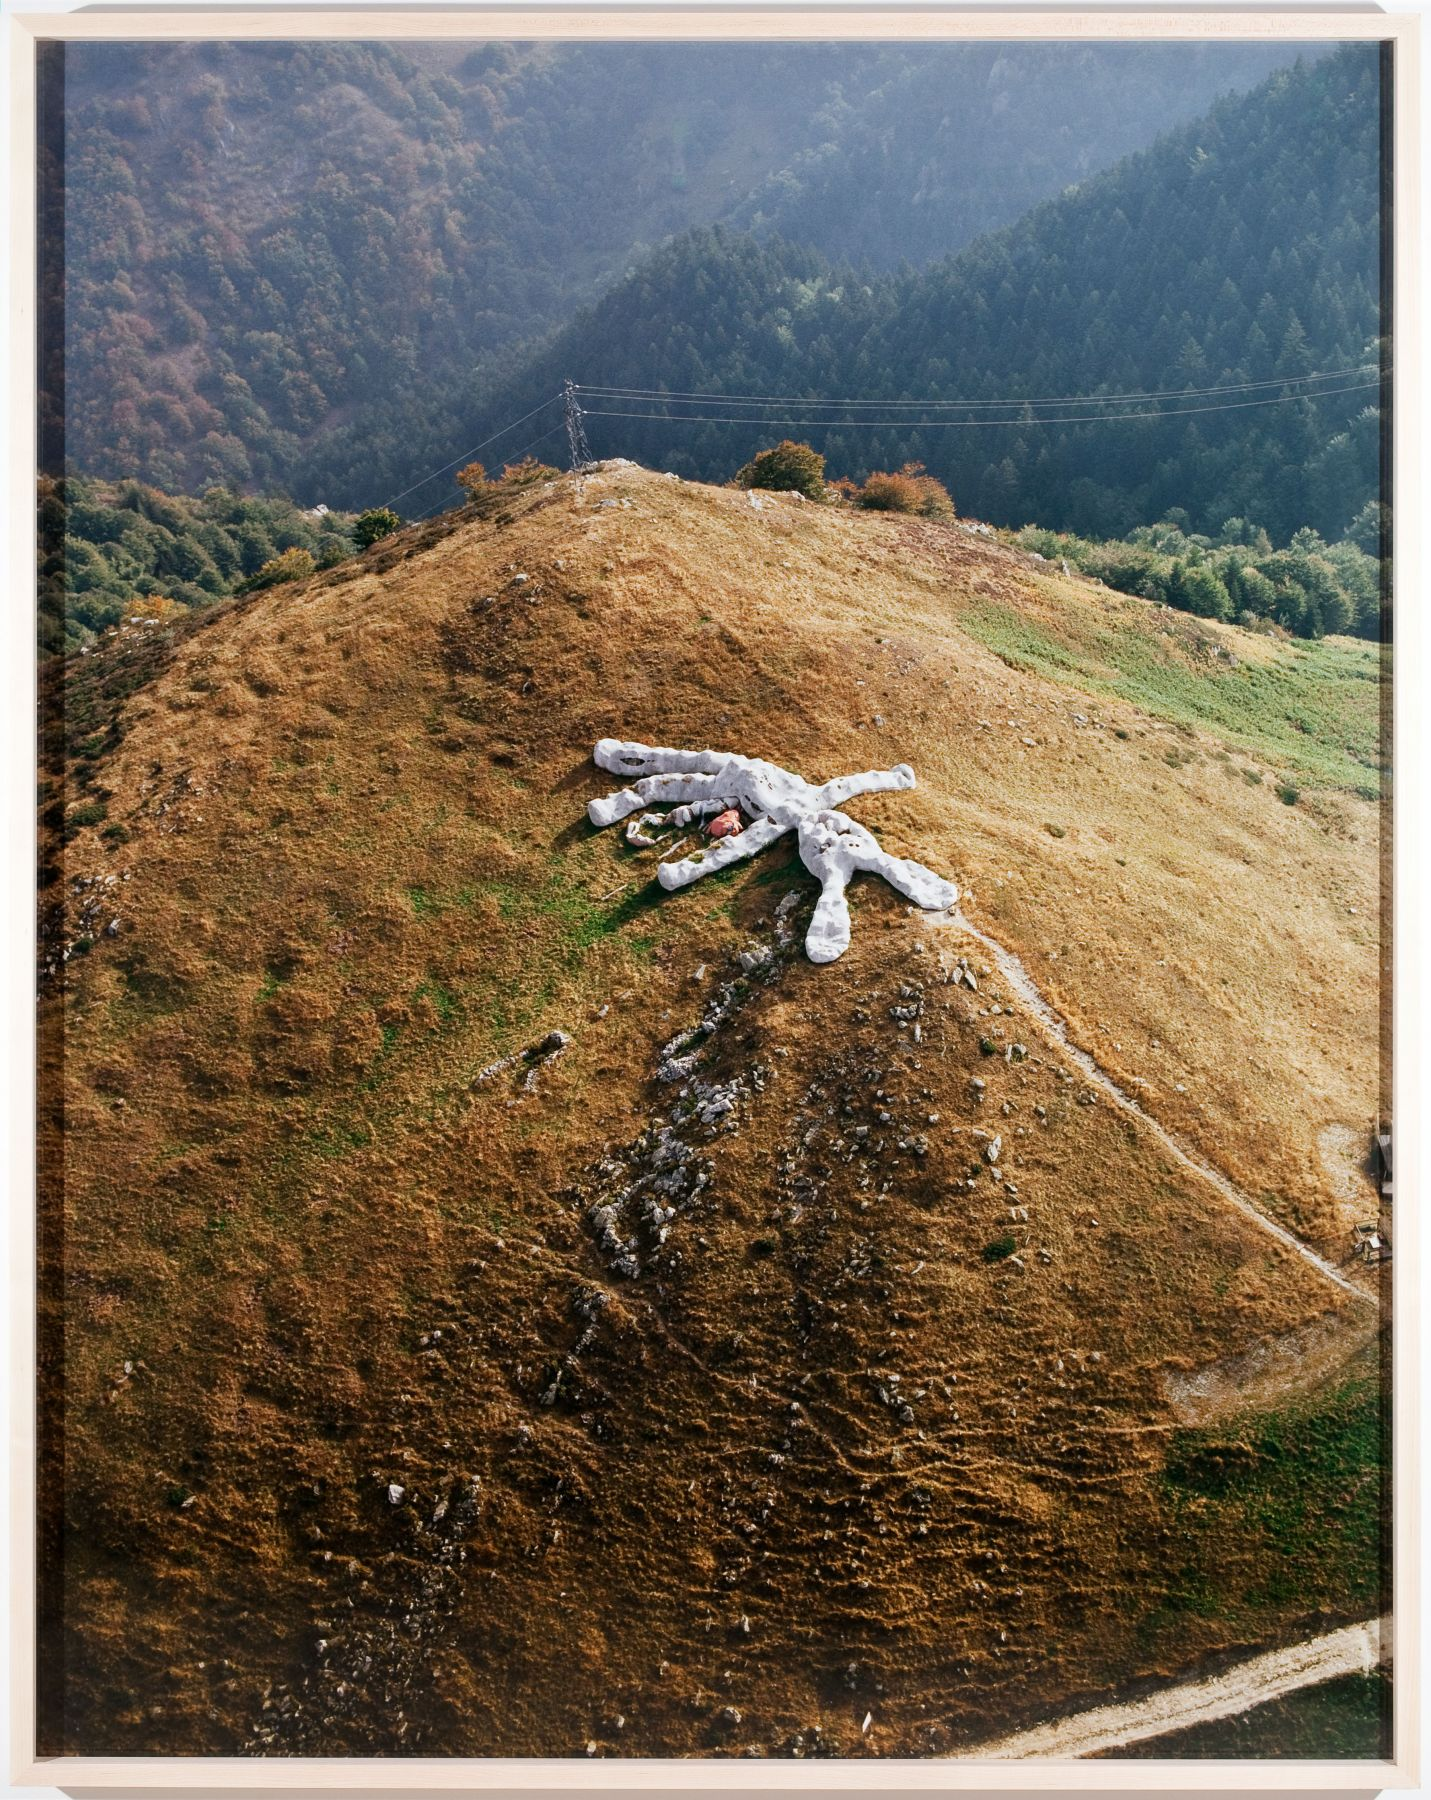 Hase, 2009, c print, 65 1/8 x 51 3/8 inches